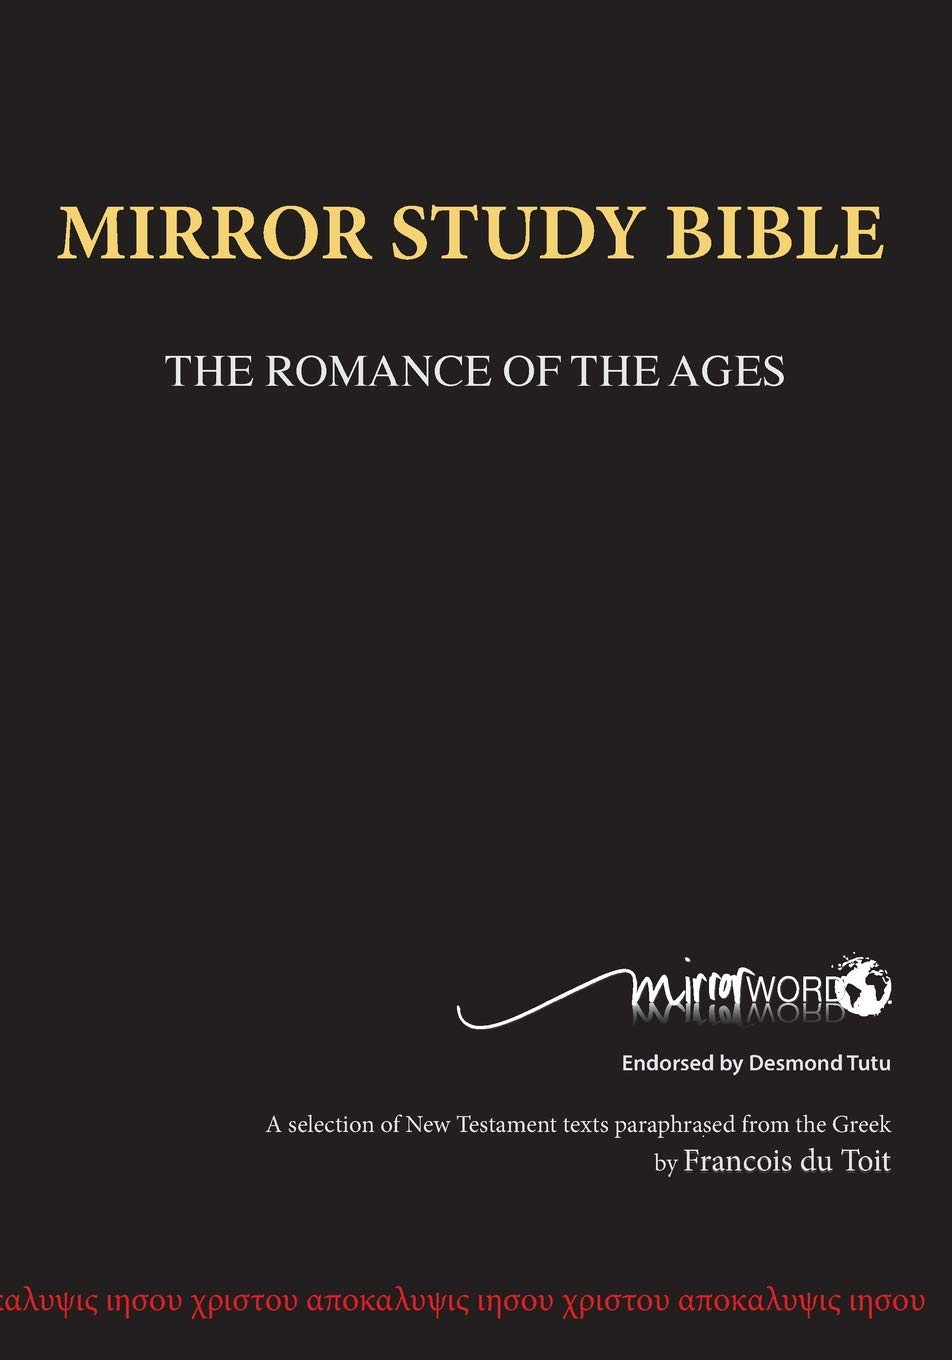 Mirror Bible (784 page, Eighth Edition 7 X 10 Inch, Wide Margin - the black cover replaces both the older red and blue cover versions by Mirrorword Publishing